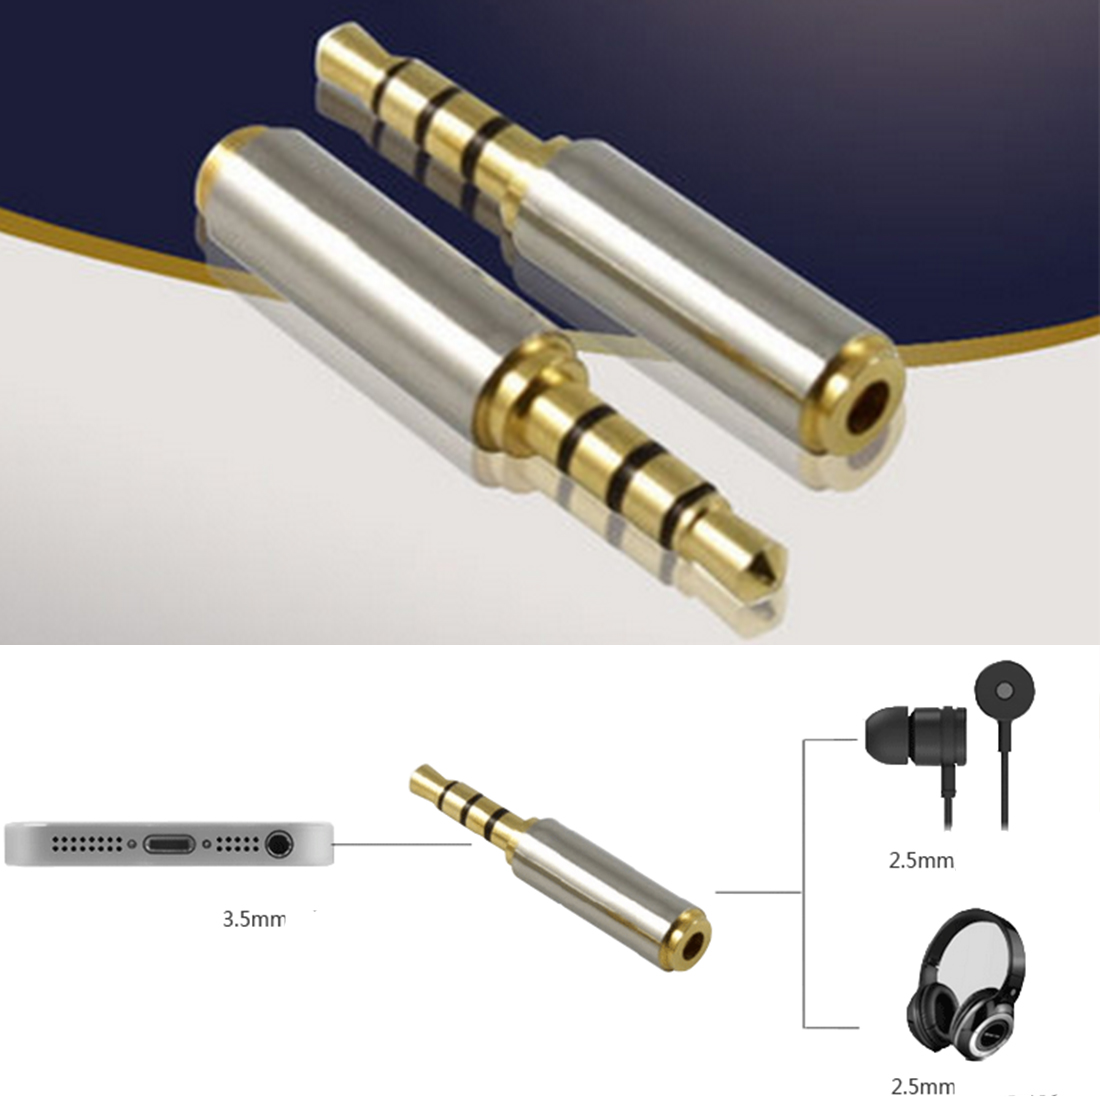 hot sale 1pc Gold 2.5 mm Male to 3.5 mm Female audio Stereo Adapter Plug Converter Connector Headphone jack reliable 100% brand new and high quality 2 5mm male to 3 5mm female stereo audio headphone jack adapter converter